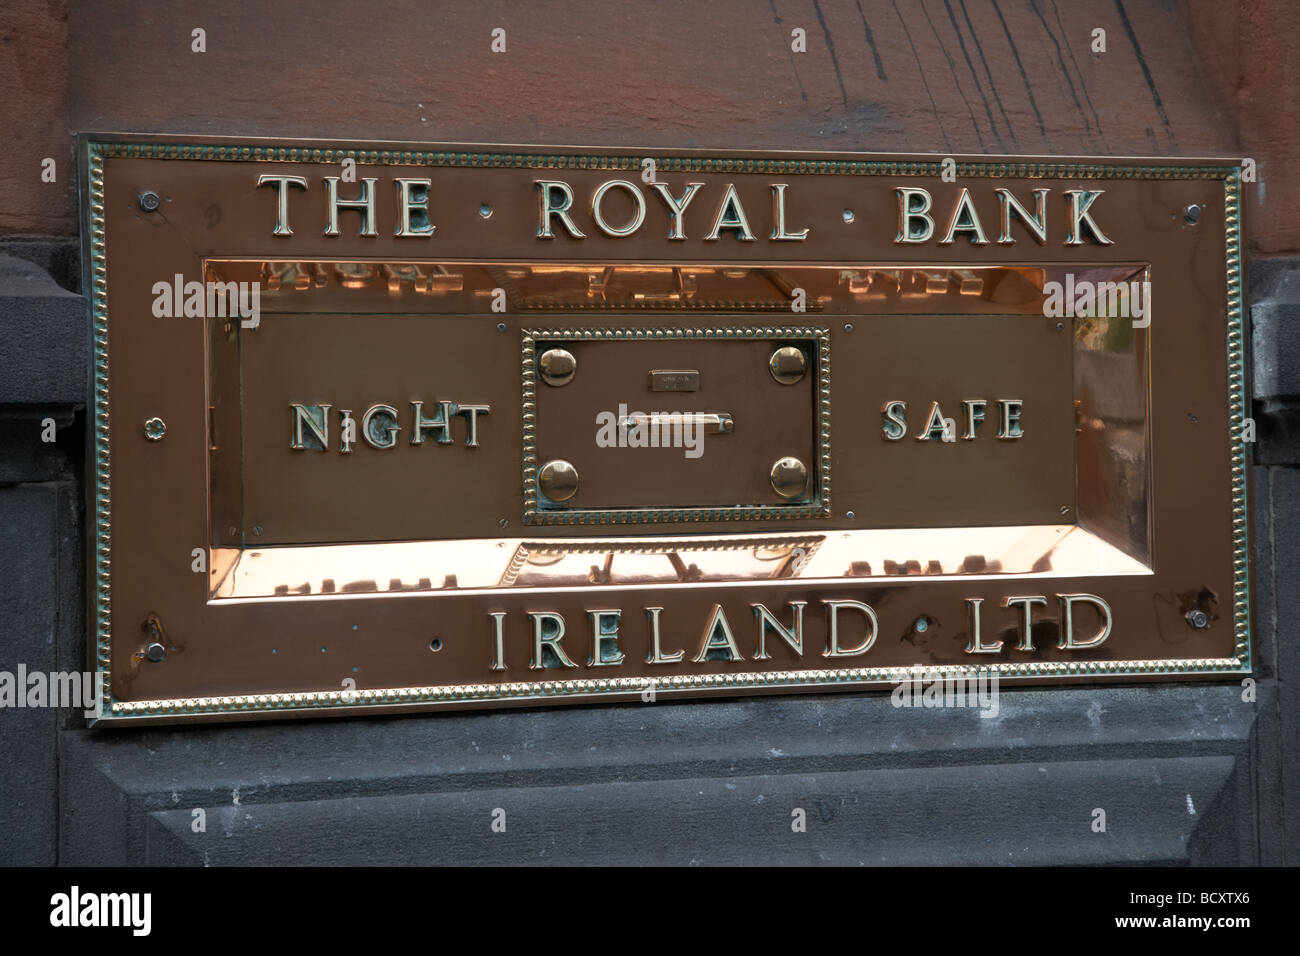 highly polished copper night safe plaque of the royal bank ireland ltd bank in dame street now a pub dublin republic - Stock Image